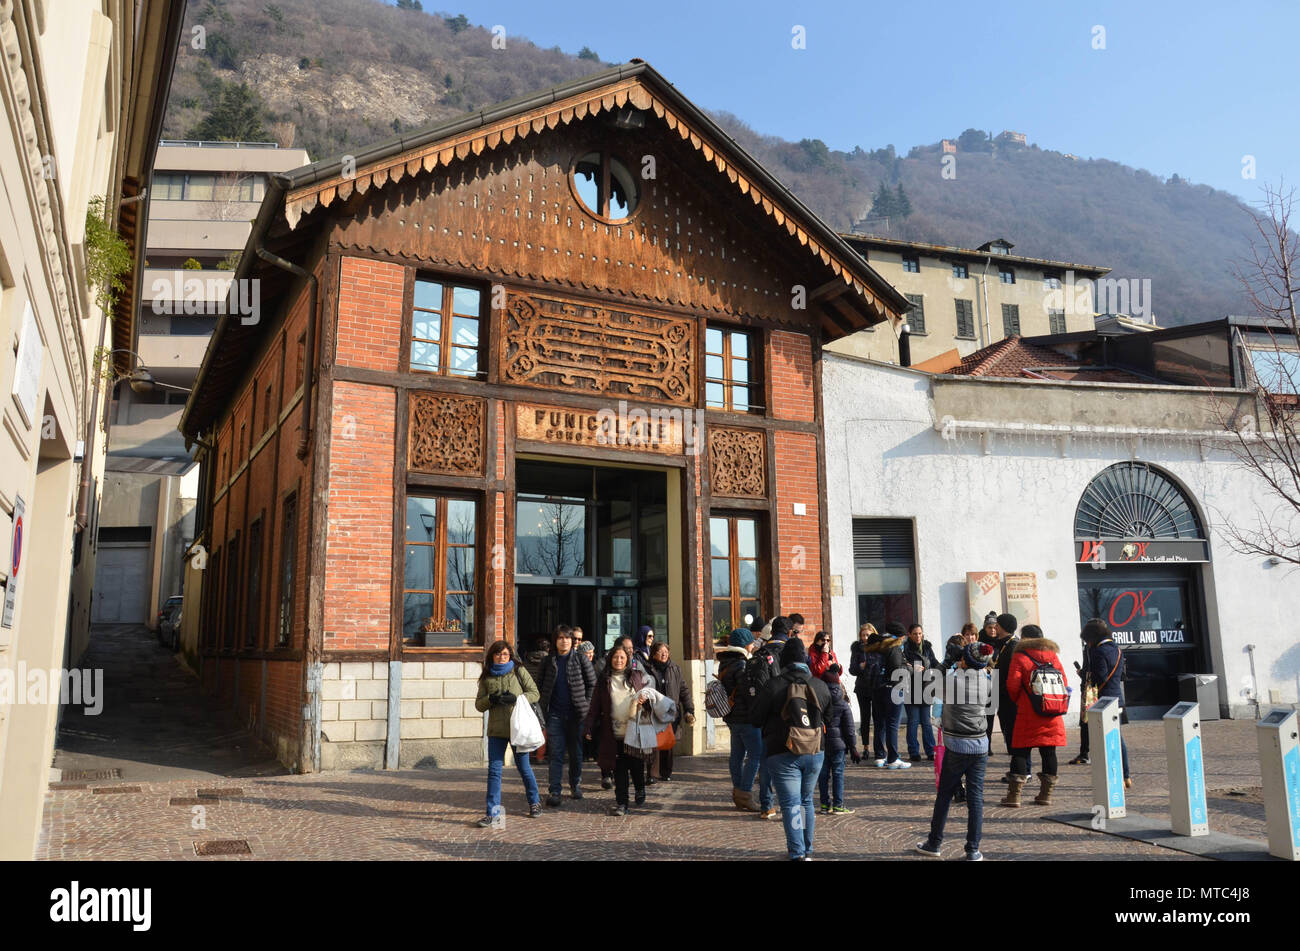 The entrance to the Como-Brunate funicular railway, Como, Lake Como, Lombardy, Italy, January 2018 - Stock Image